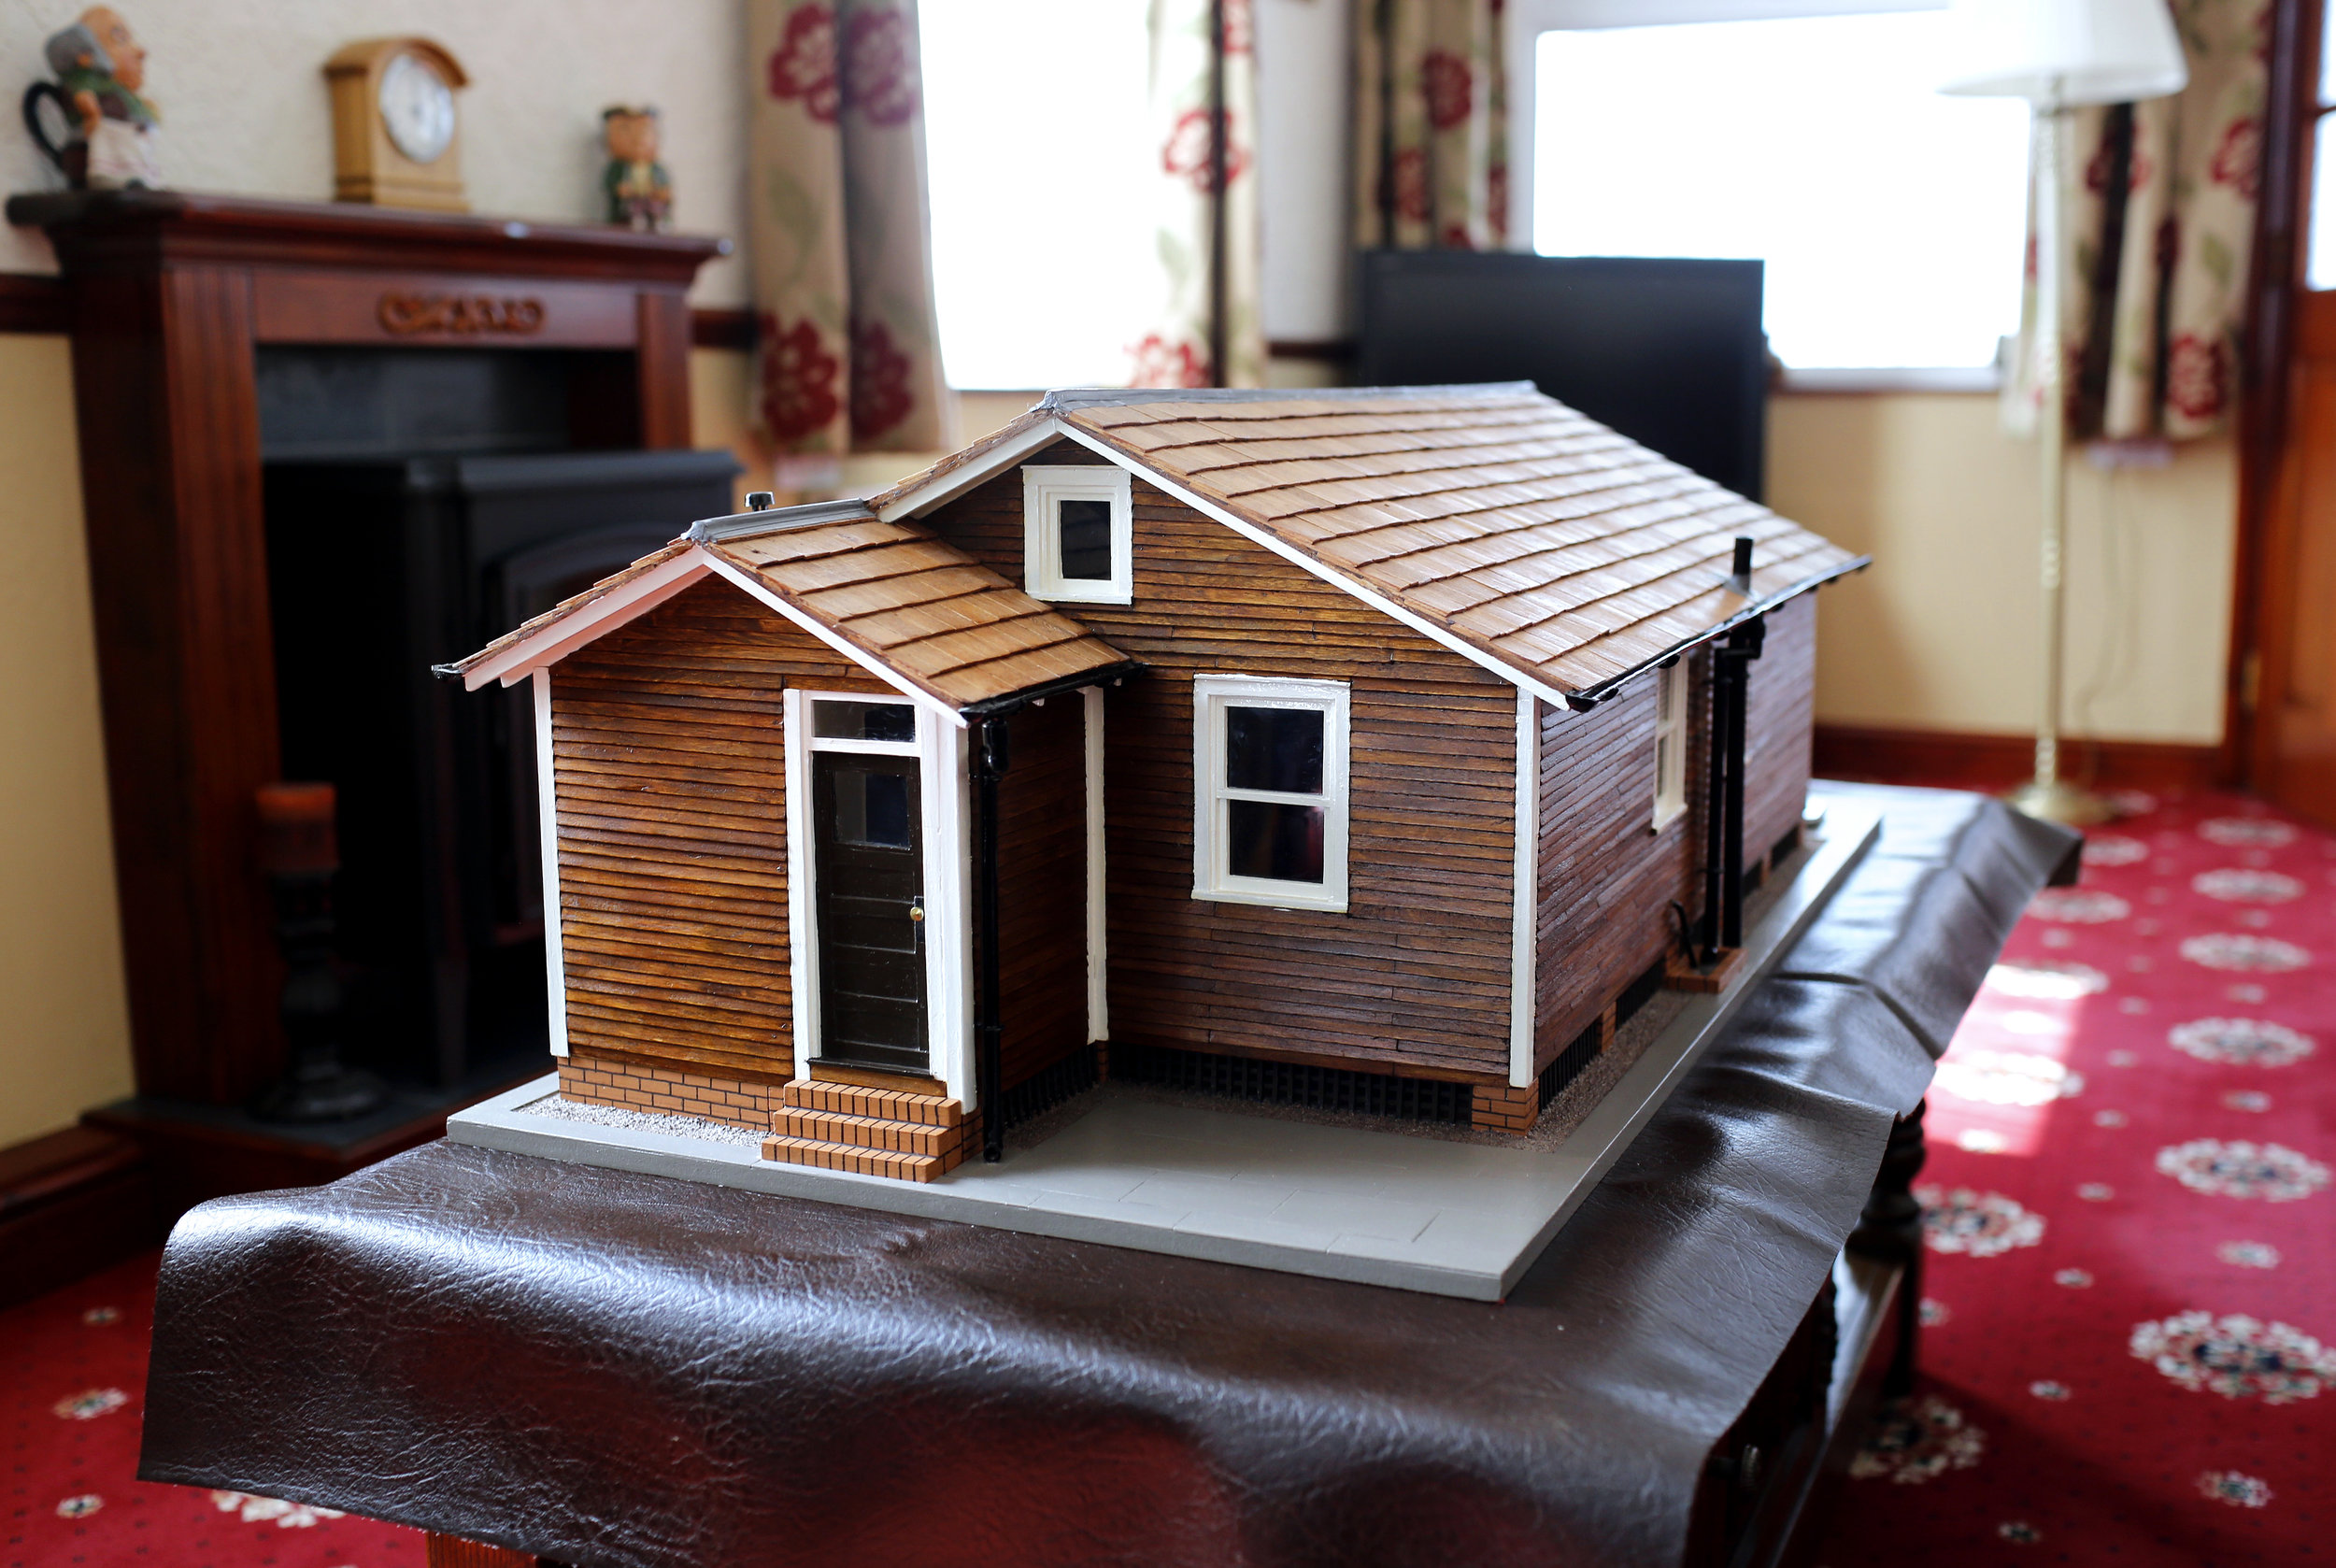 Model of an Austin Village House